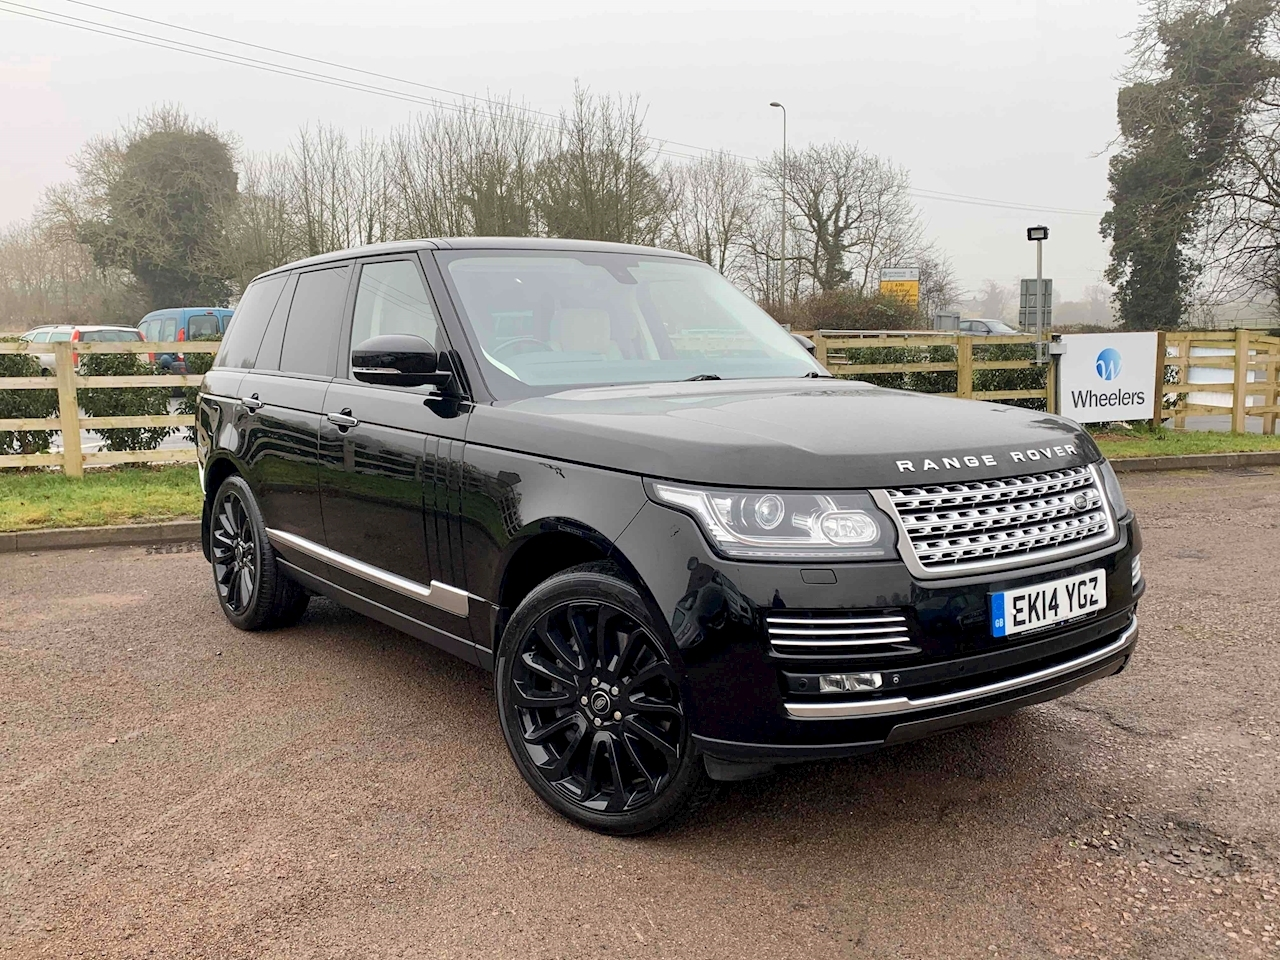 Land Rover Range Rover Sdv8 Autobiography Estate 4.4 Automatic Diesel